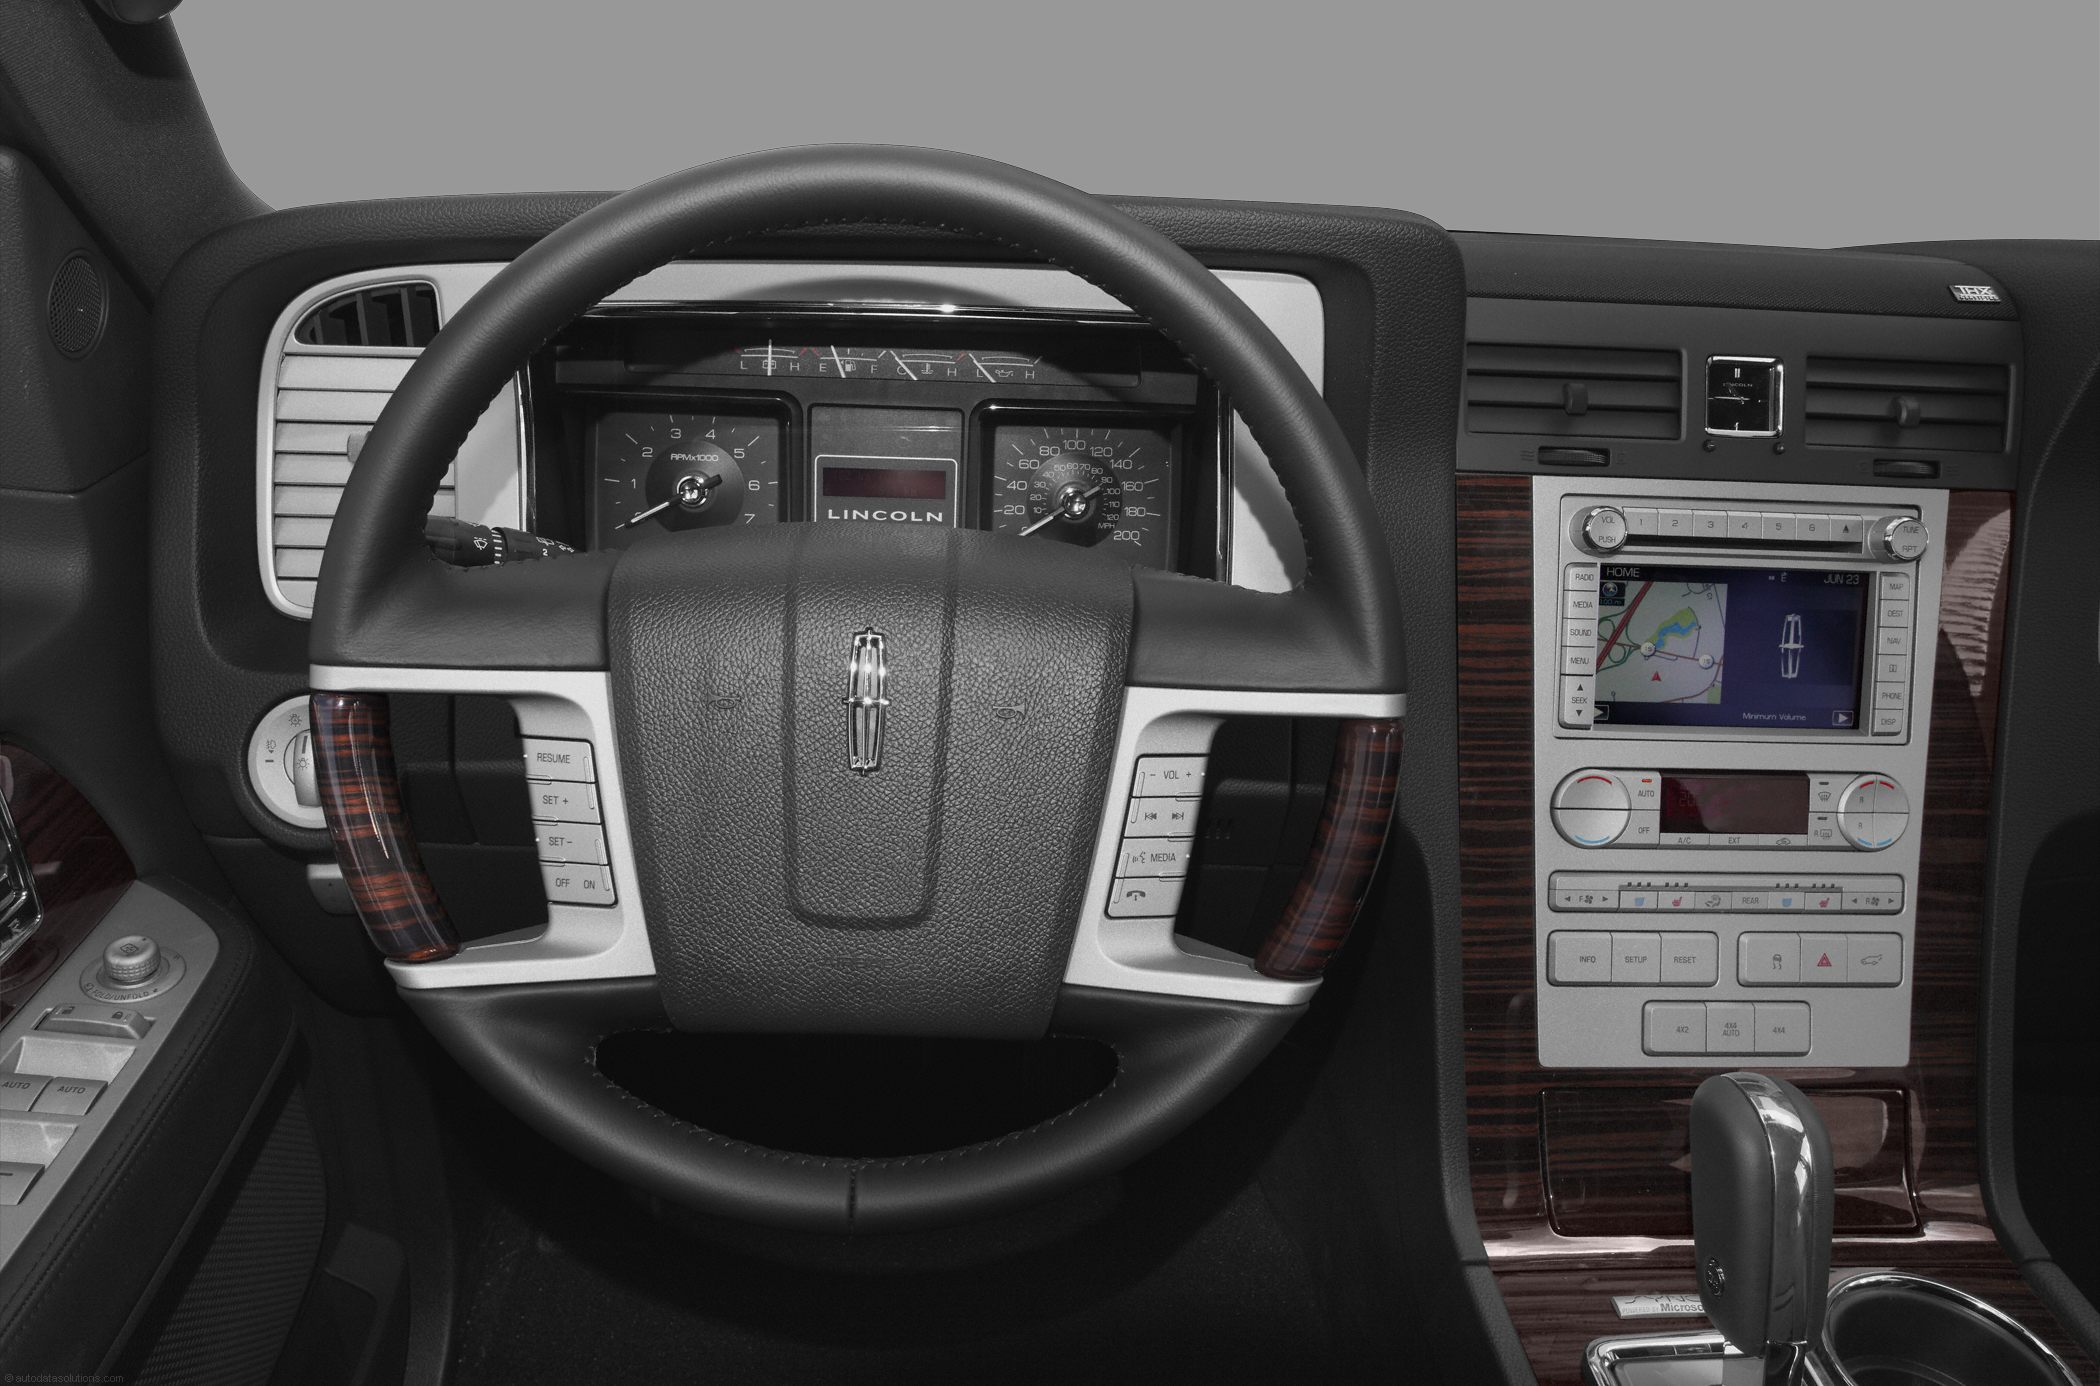 images l pictures exterior com lincoln oemfrontcompartmentview navigator and including interior autobytel